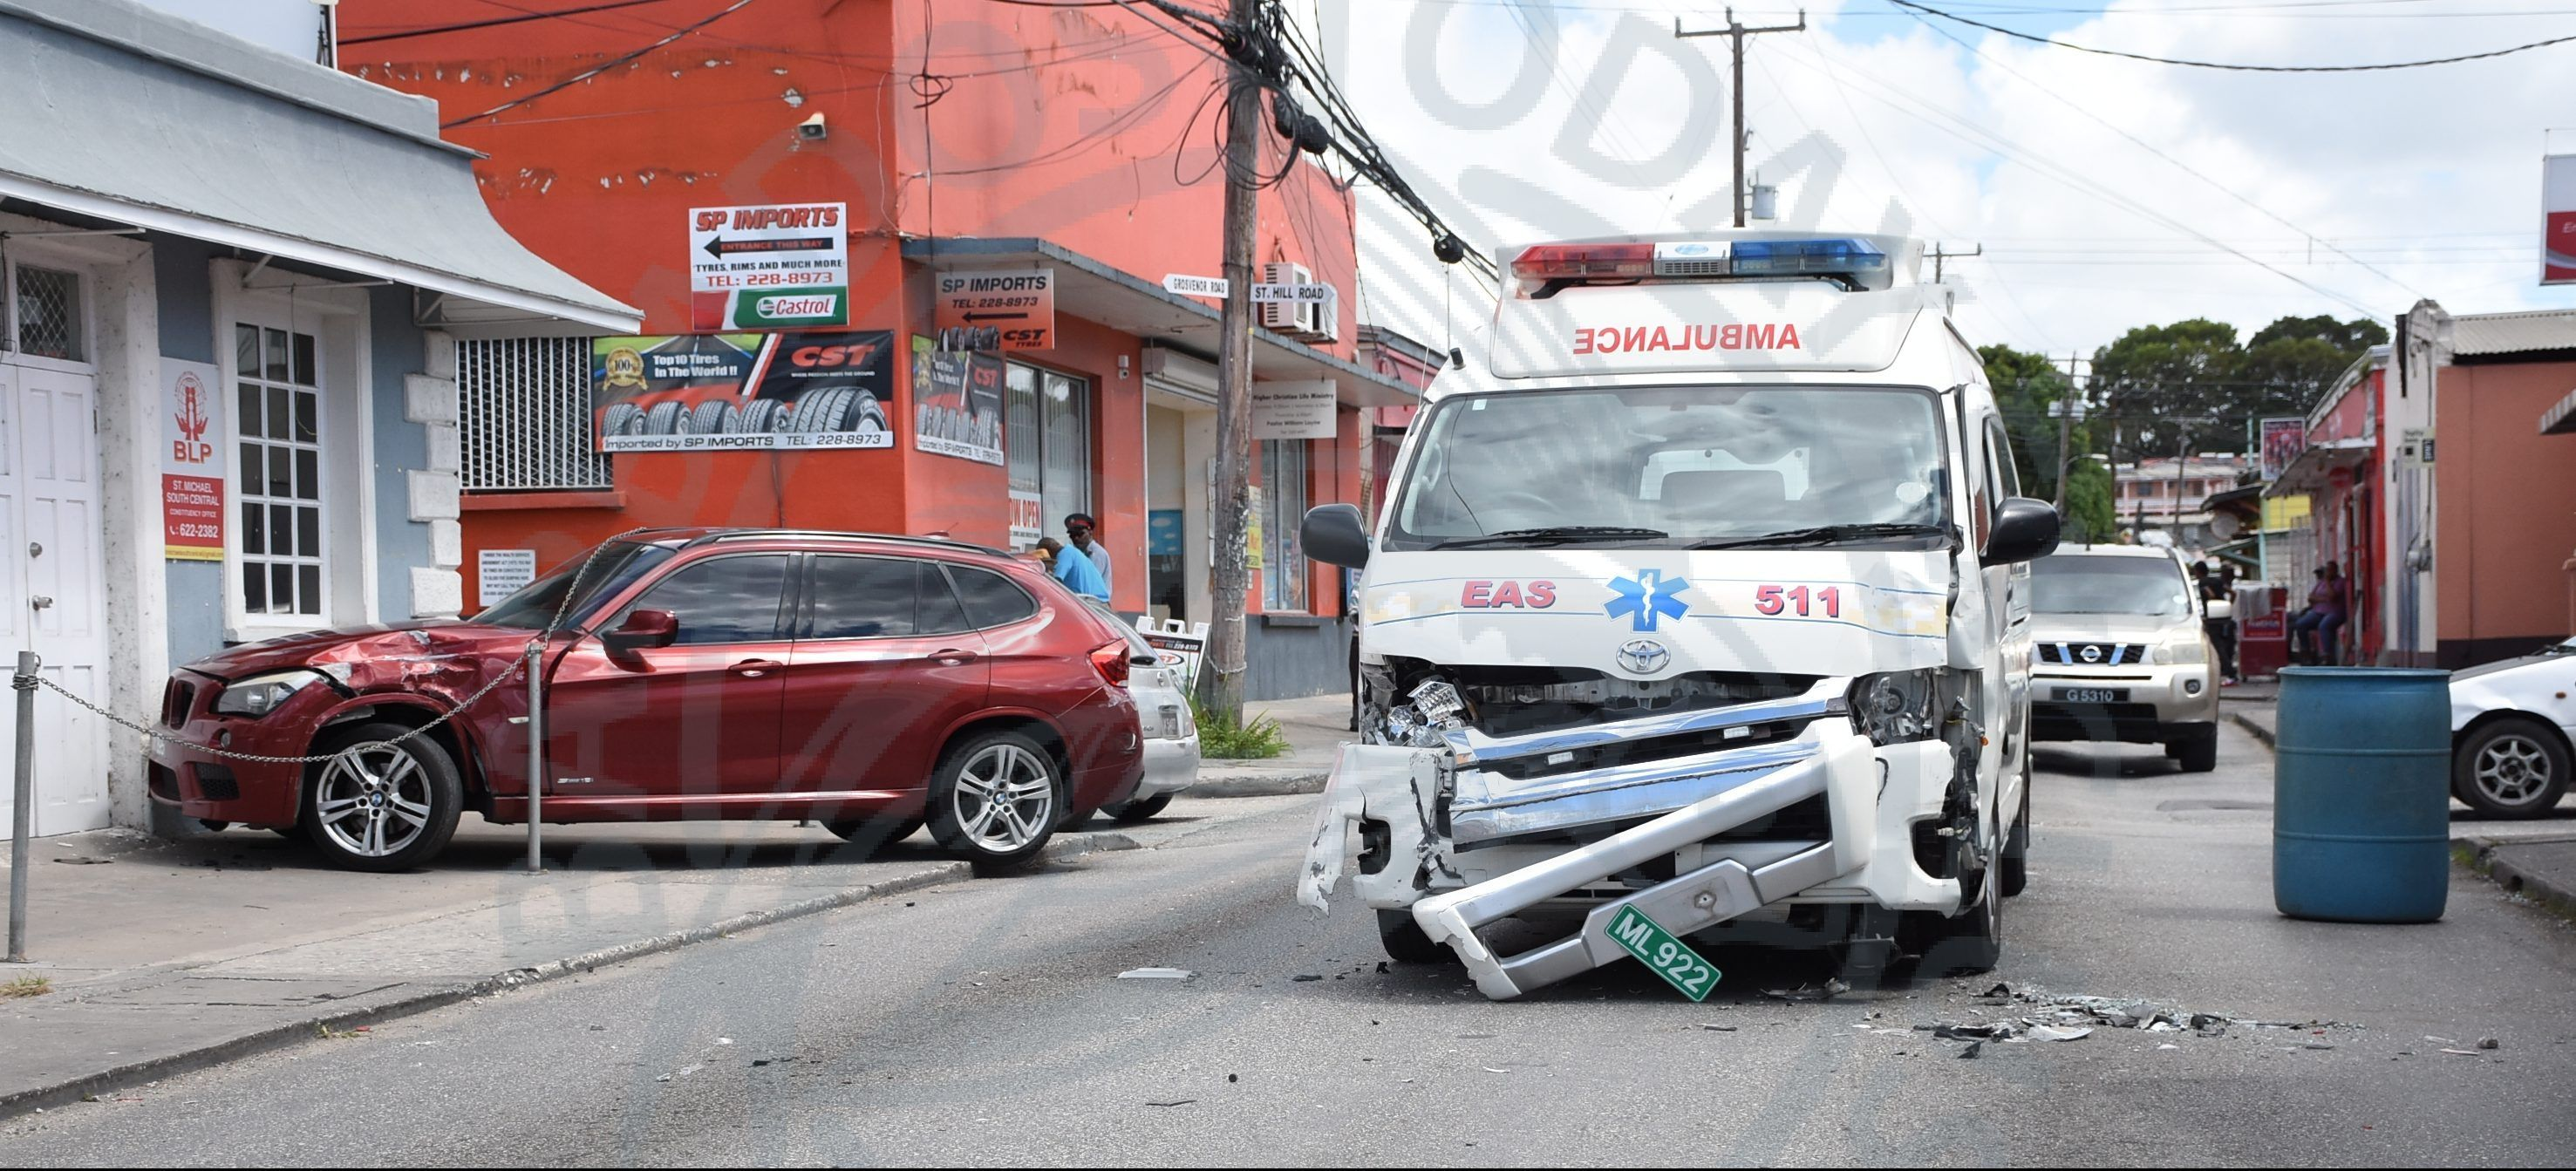 Three vehicle accident on Tweedside Road   Today's News   Vehicles